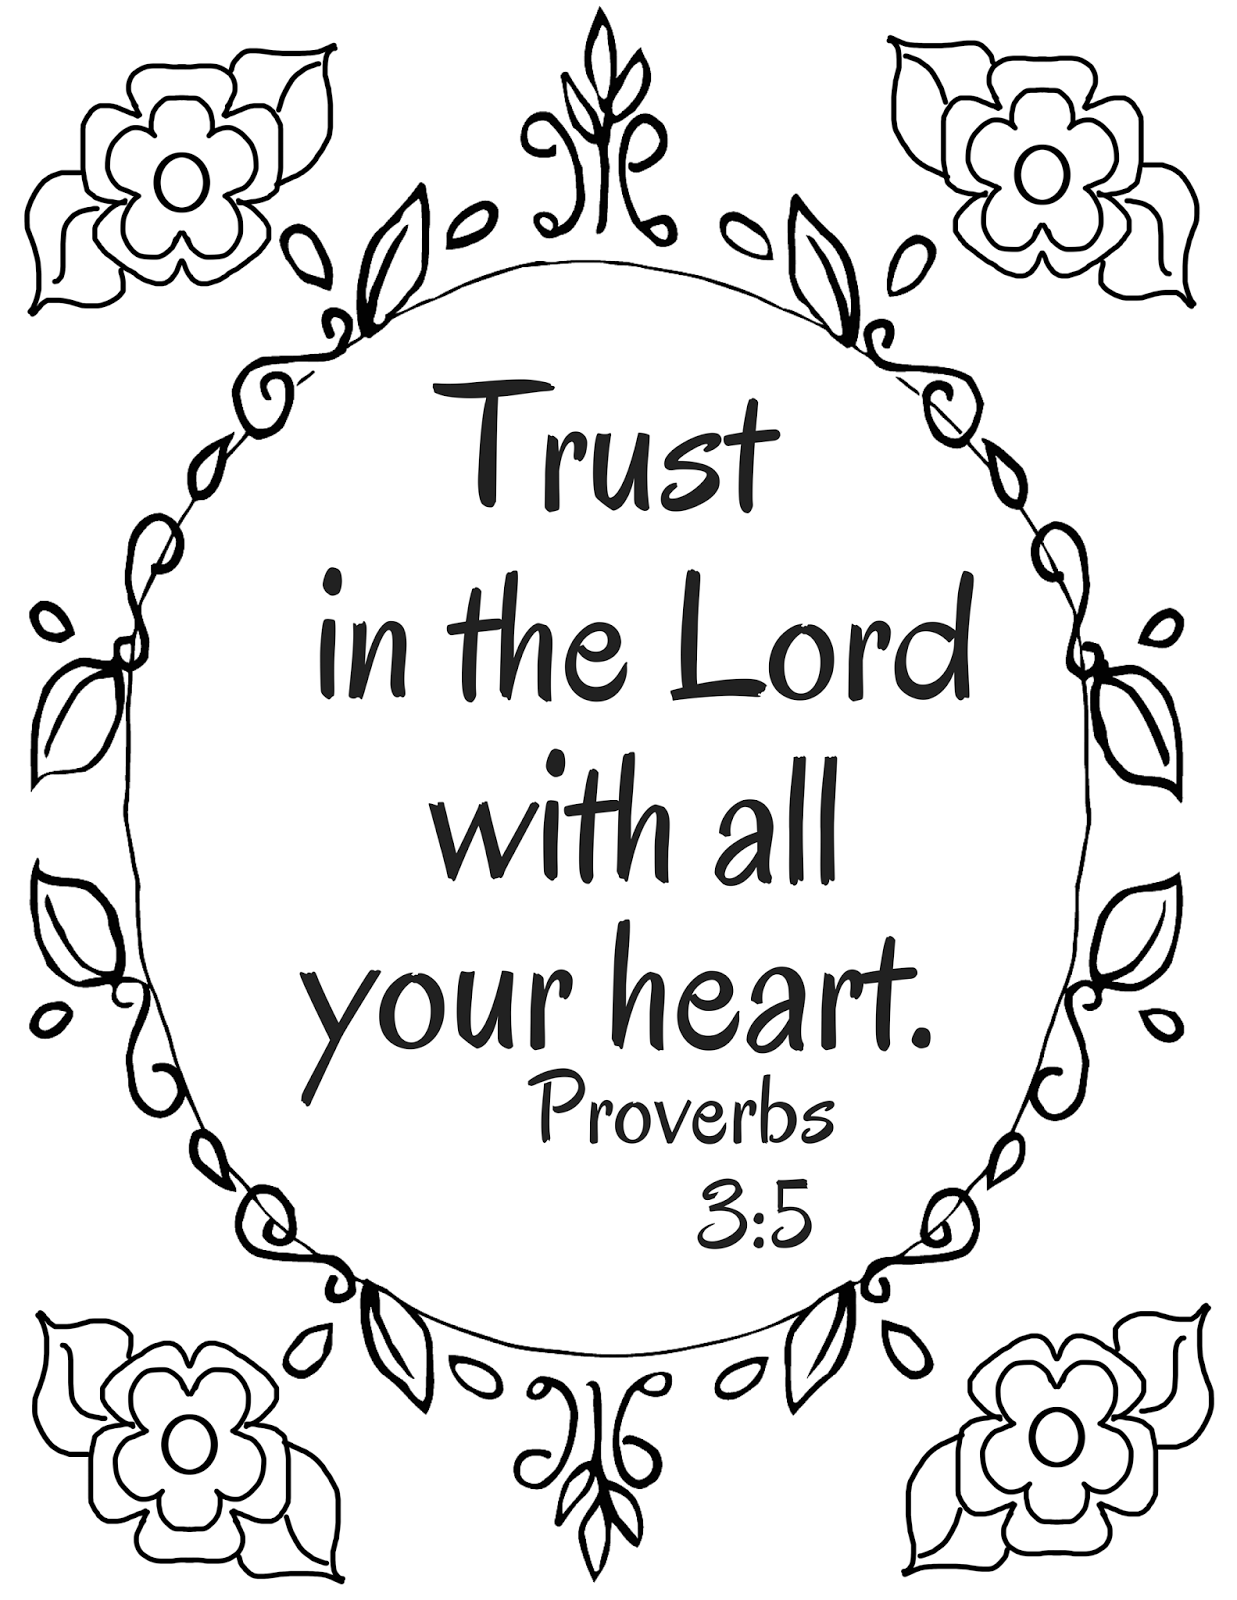 The Prudent Pantry Trust In The Lord With All Your Heart